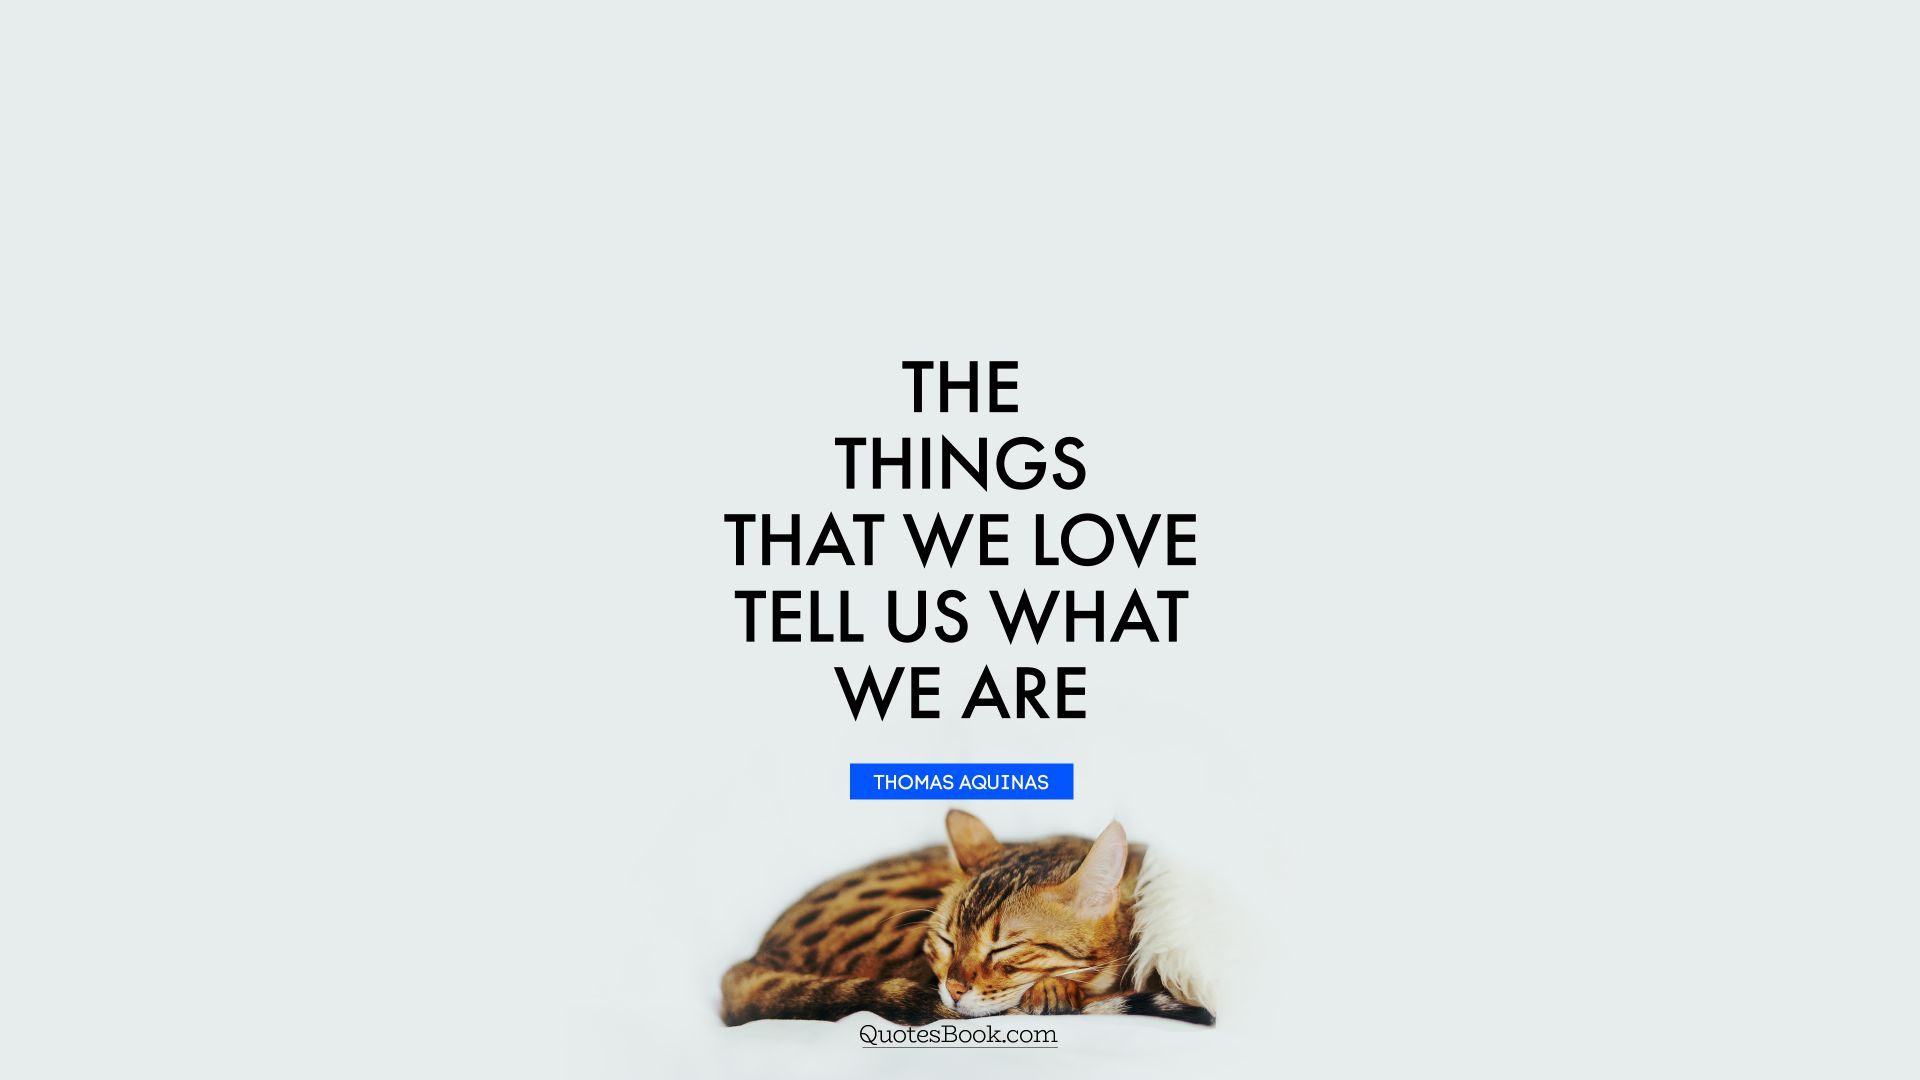 The things that we love tell us what we are. - Quote by Thomas Aquinas